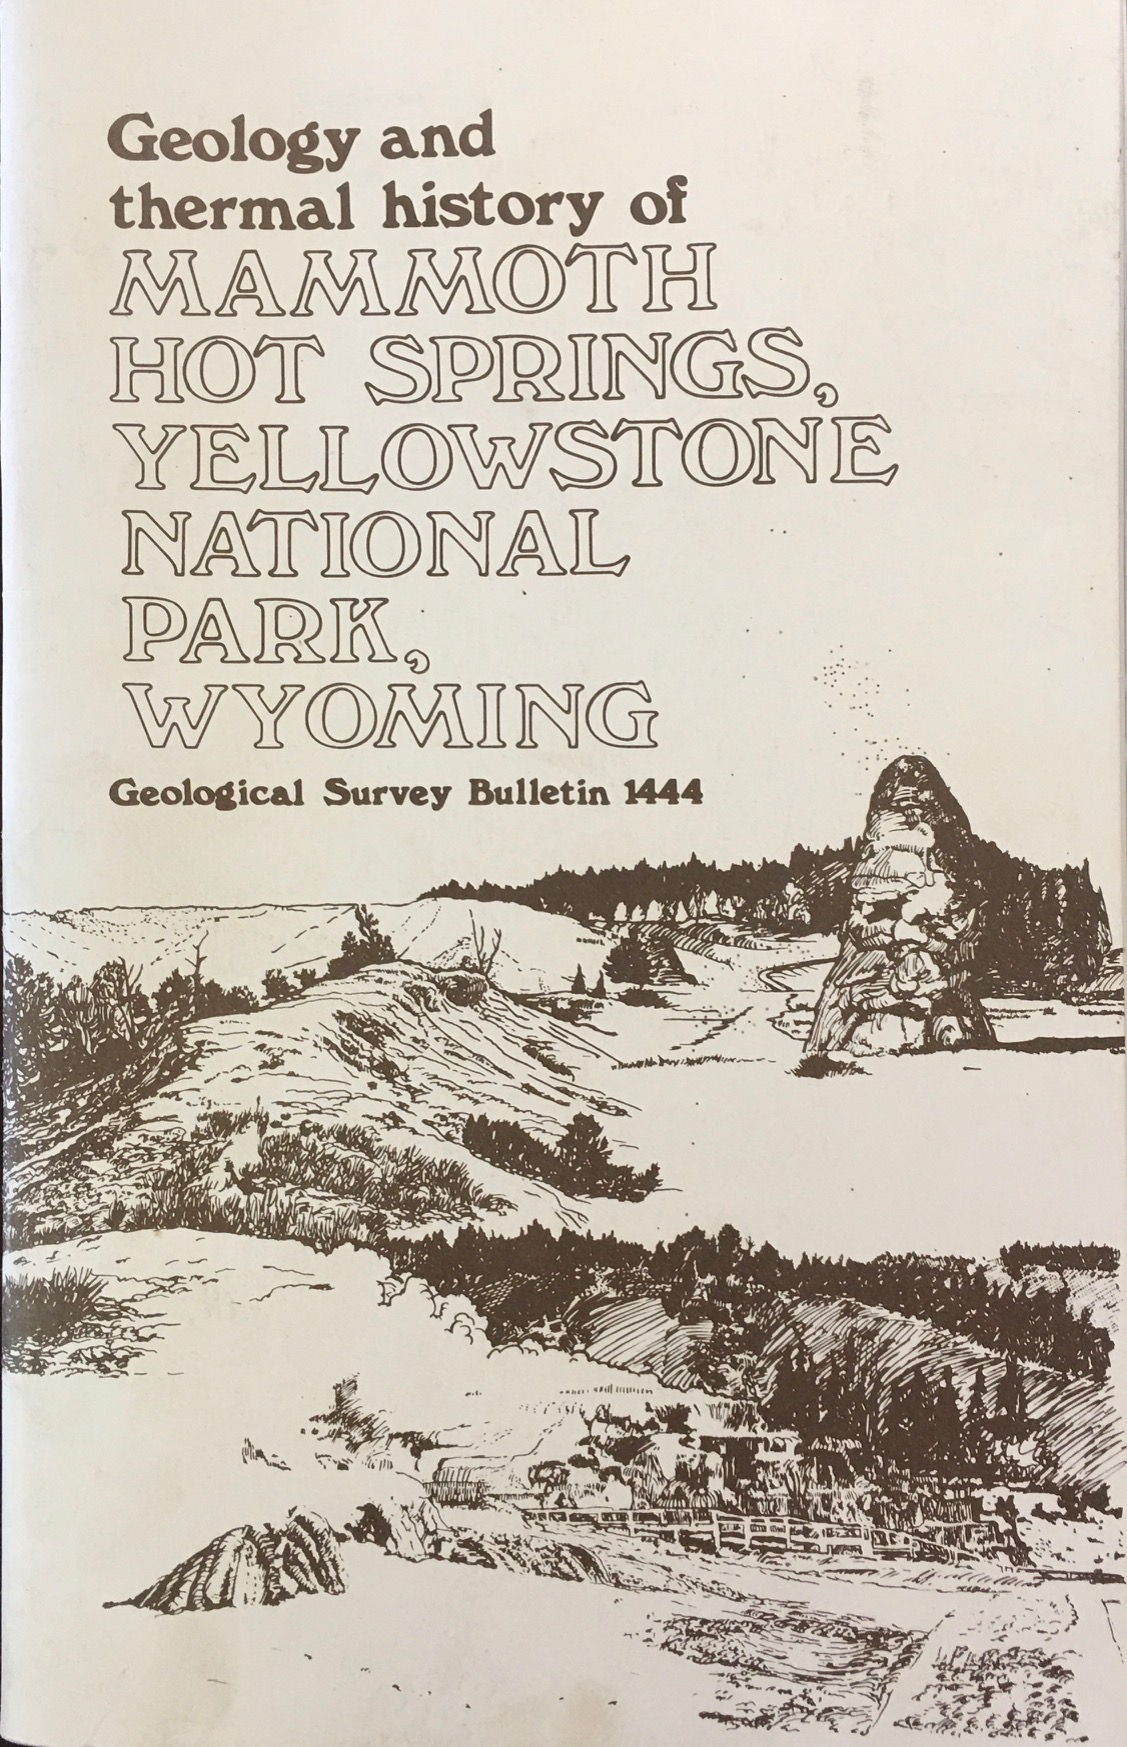 Image for Geology and Thermal History of Mammoth Hot Springs, Yellowstone National Park, Wyoming: BULLETIN 1444.